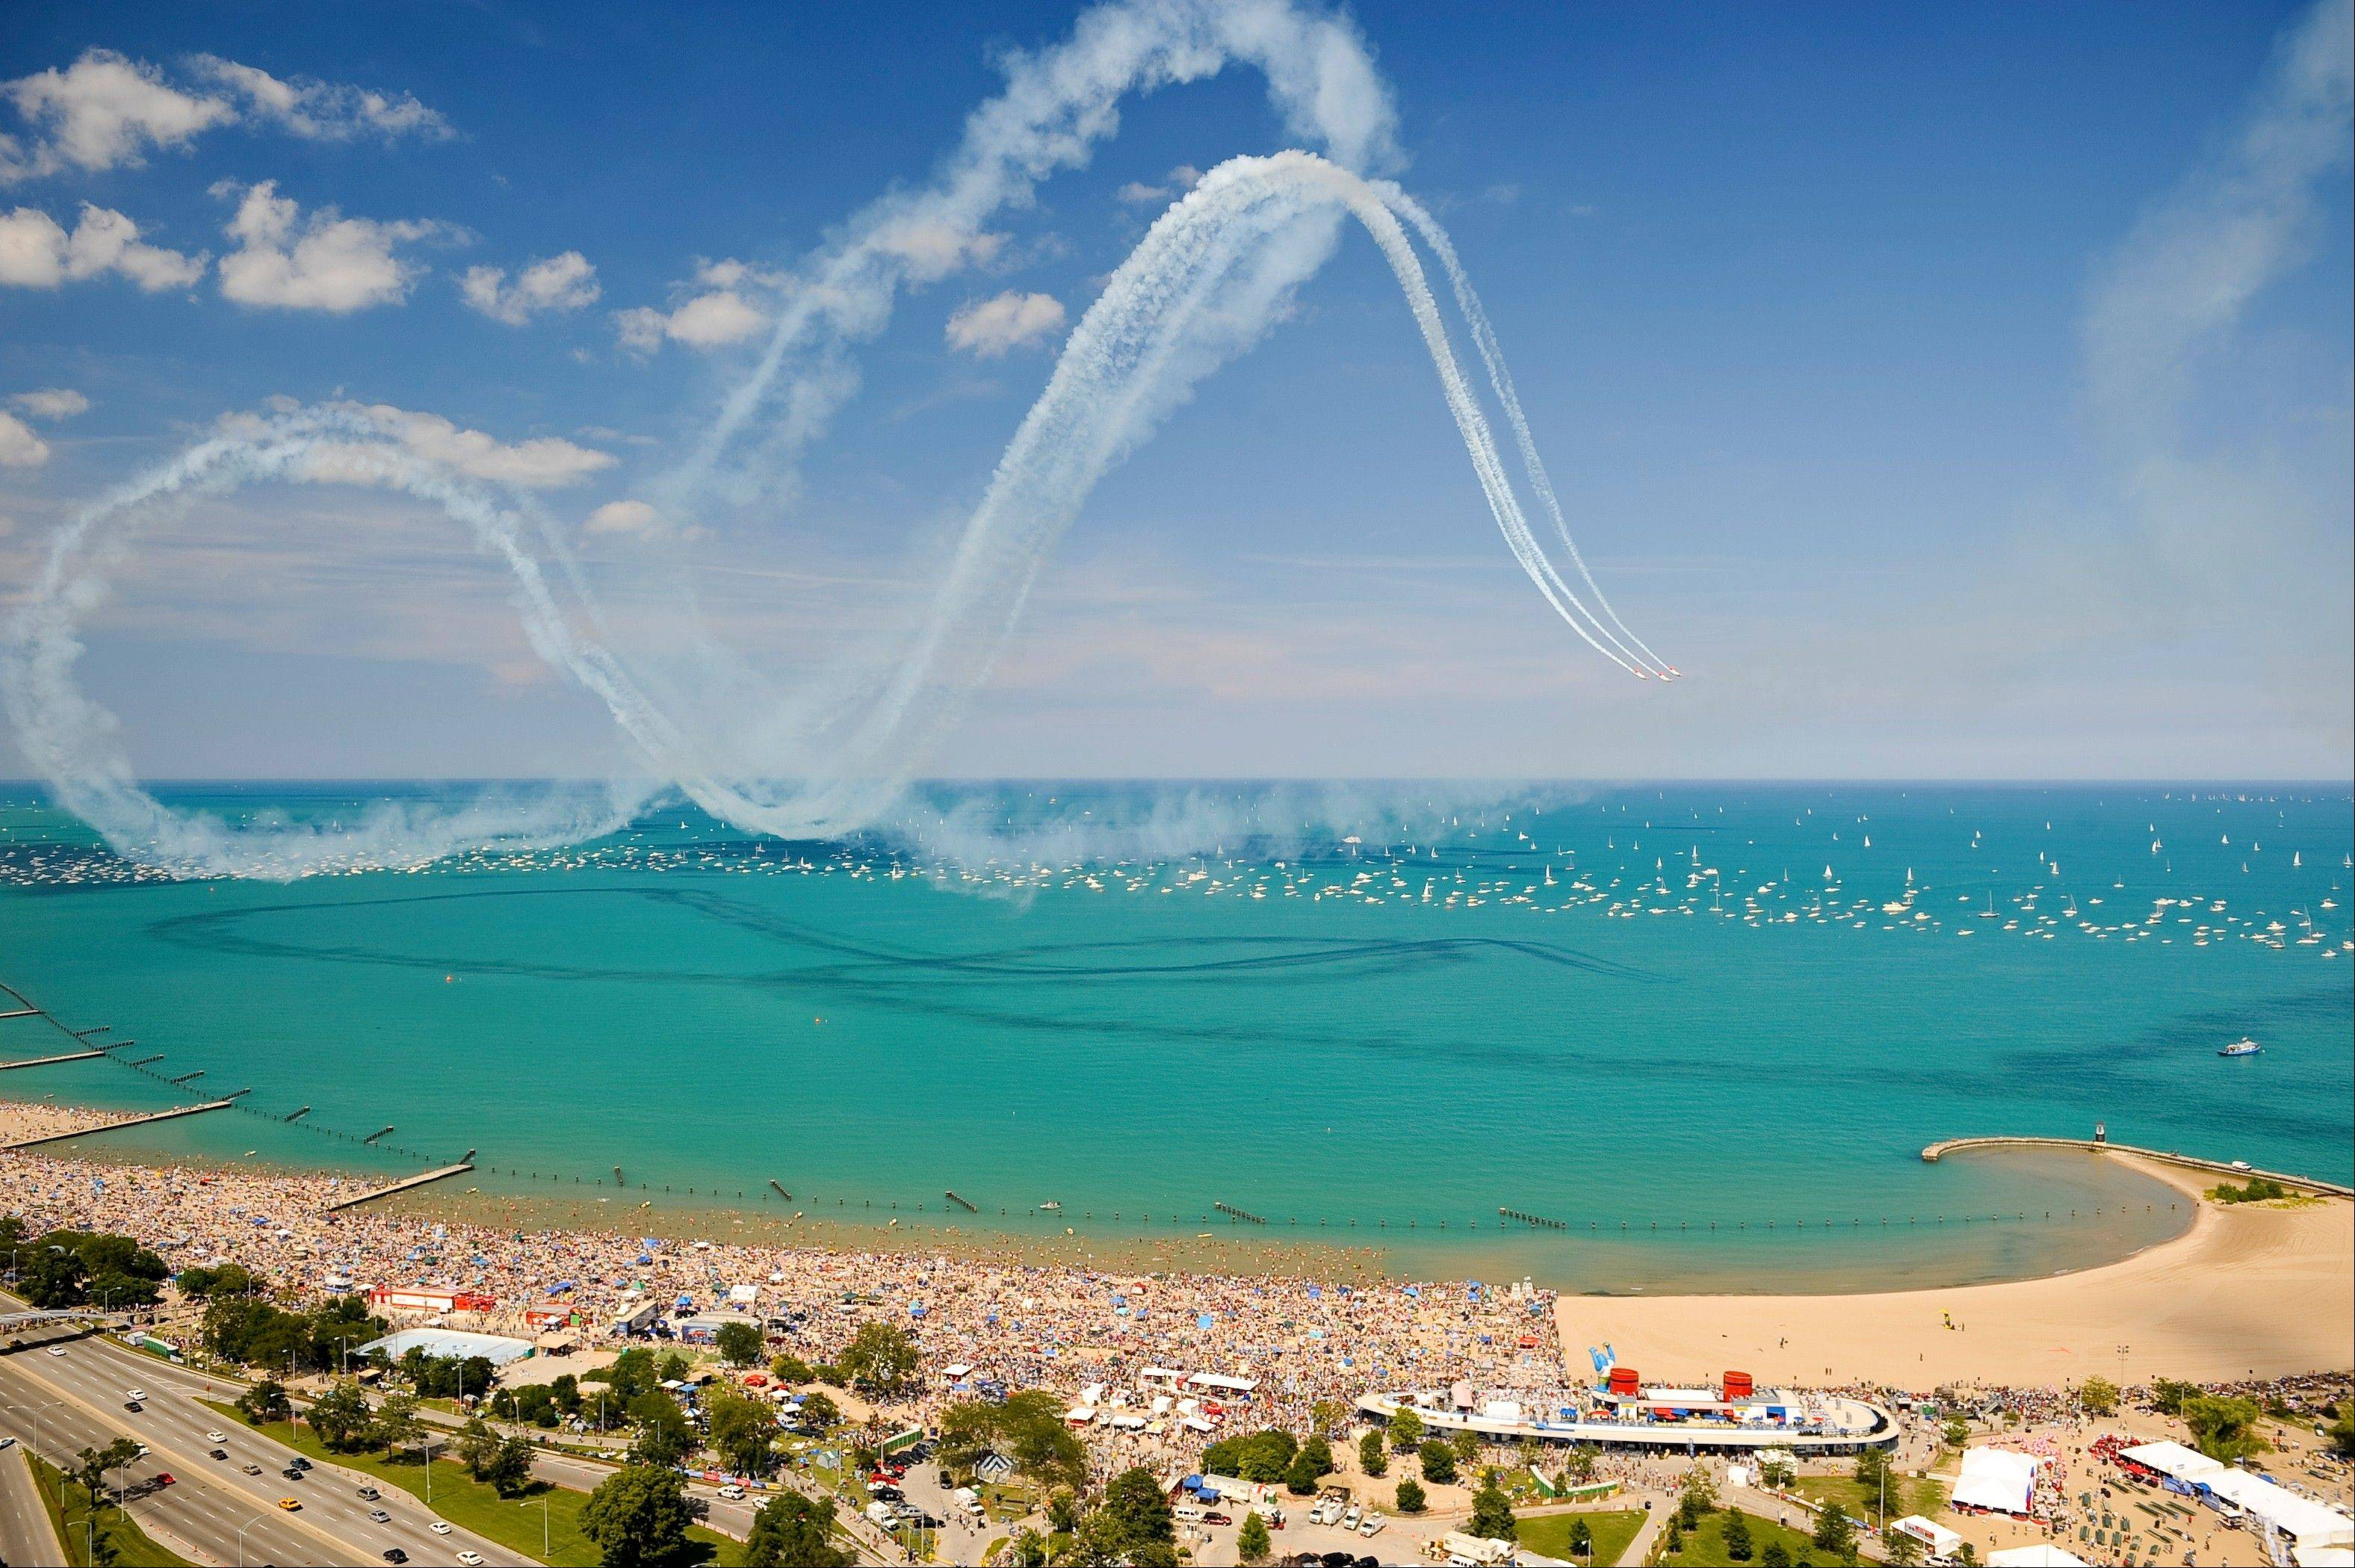 Prospect Heights Mayor Nick Helmer says get to North Avenue Beach between 8 and 9 a.m. to pick a spot for the Chicago Air and Water show.